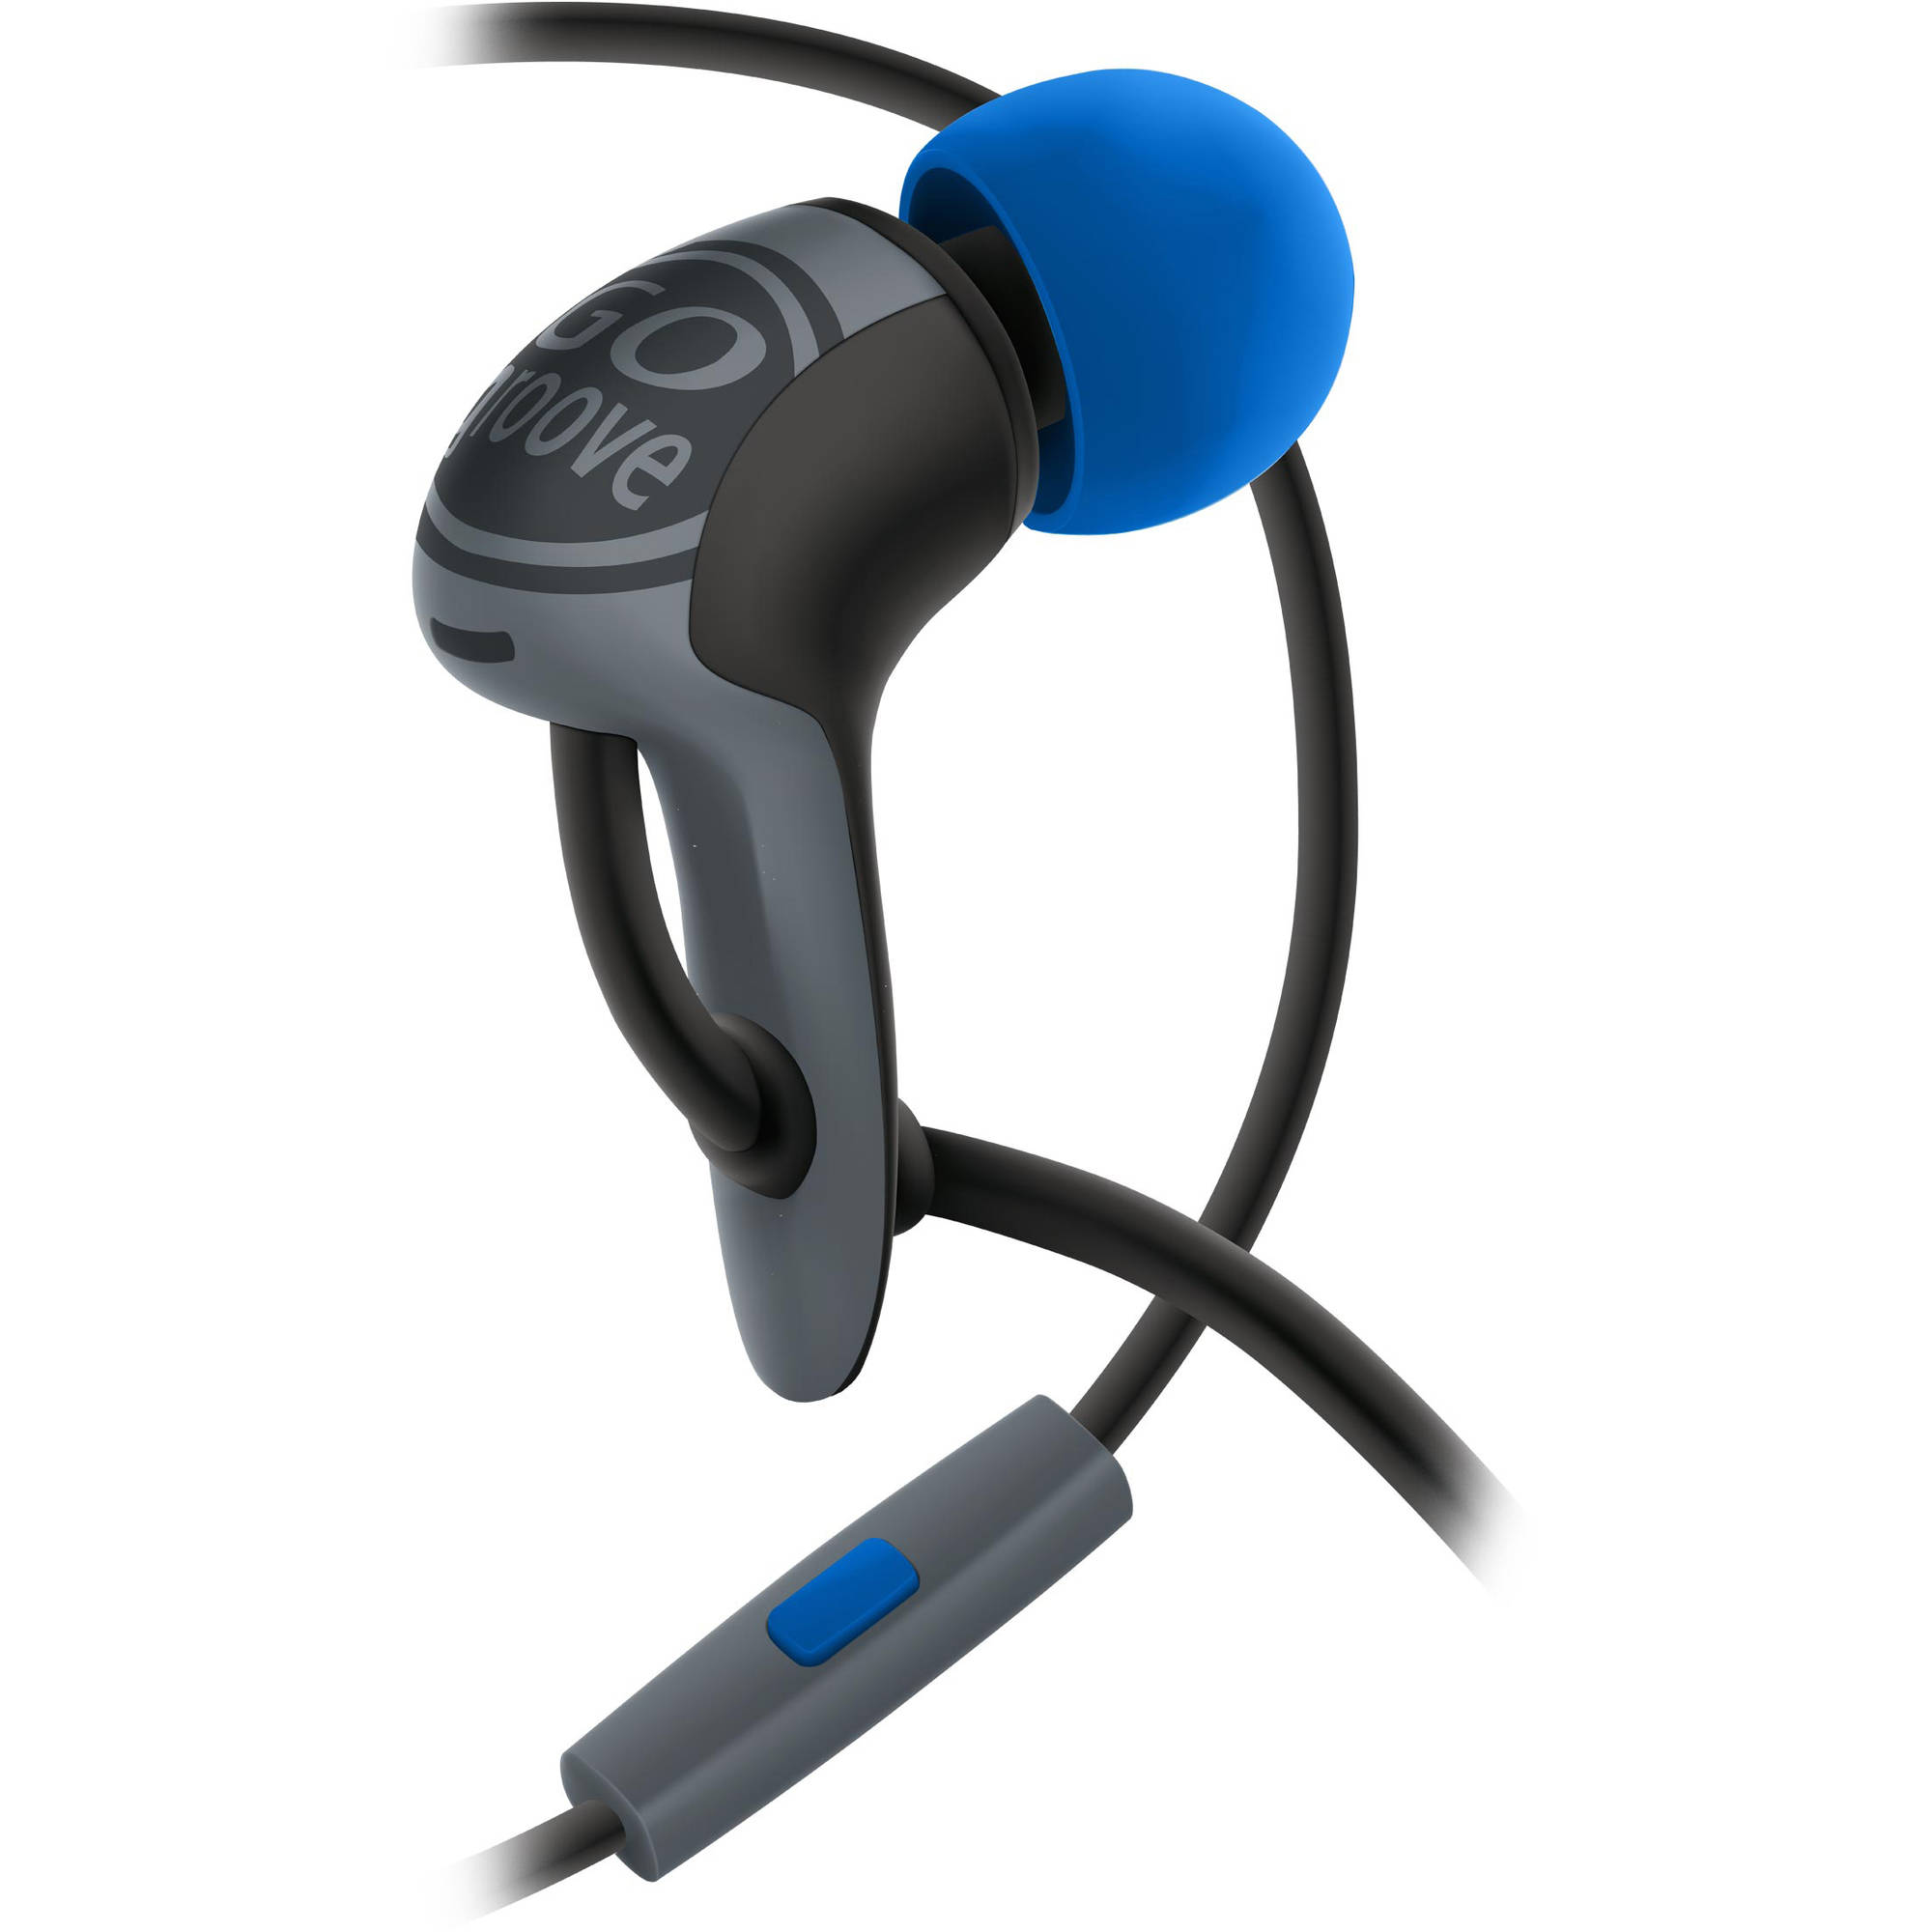 High Performance Noise Isolating AudiOHM HDX Ergonomic Earbud Headphones (Black & Blue) by GOgroove with Handsfree Mic - Works Great for Apple , Sony , HTC and More Smartphones